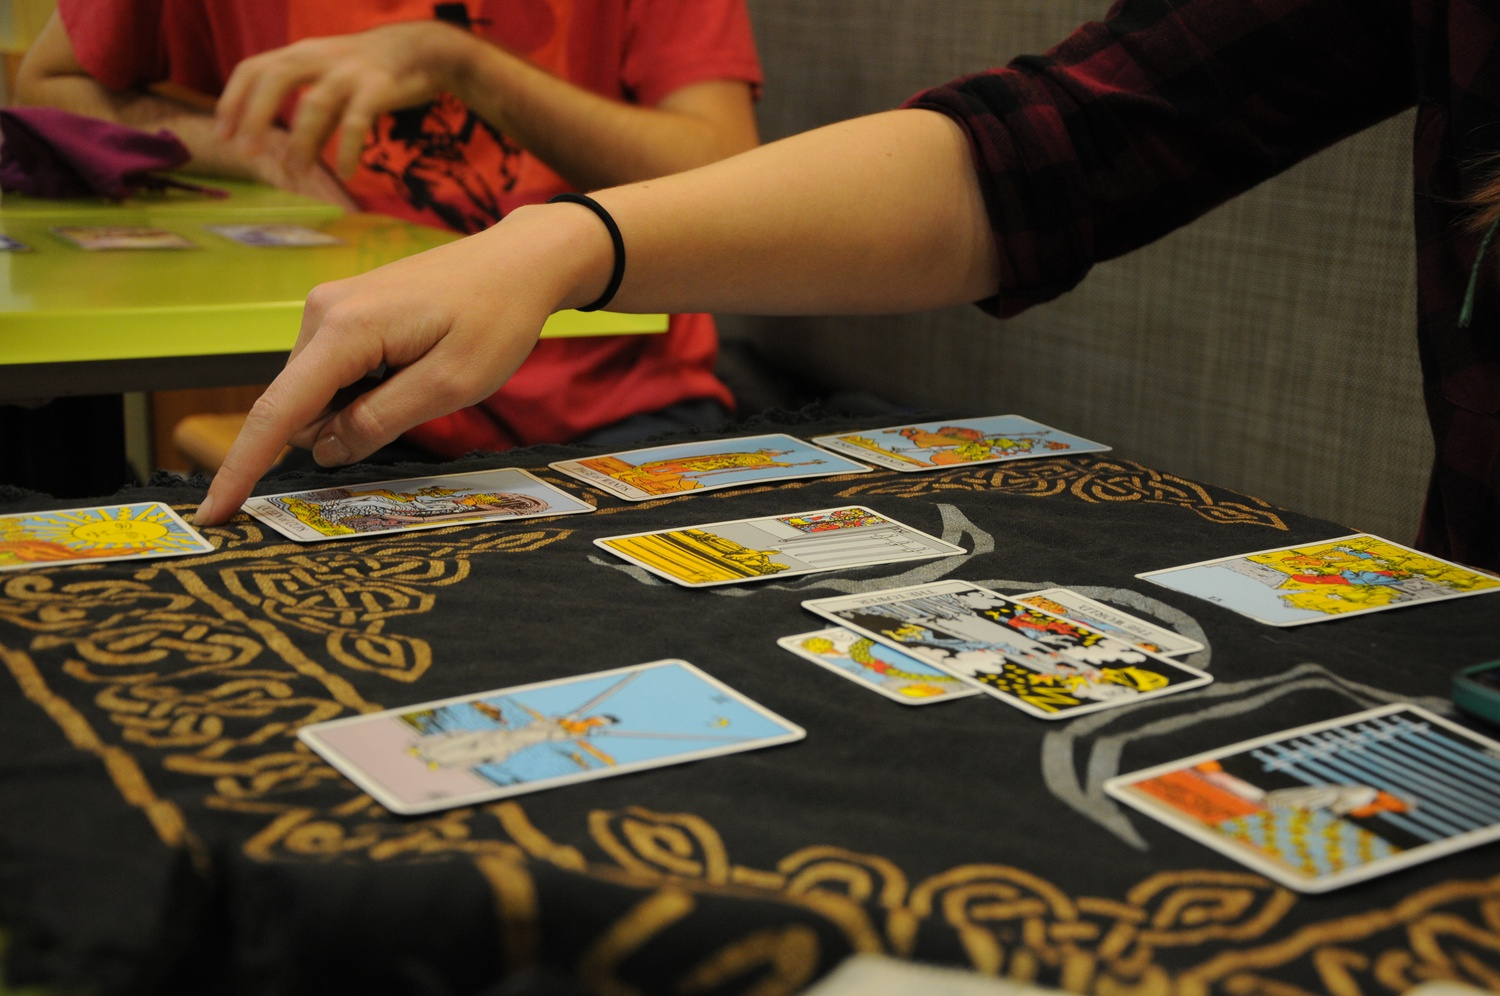 The method used to orient the tarot cards influences how the reader interprets the cards' meanings.